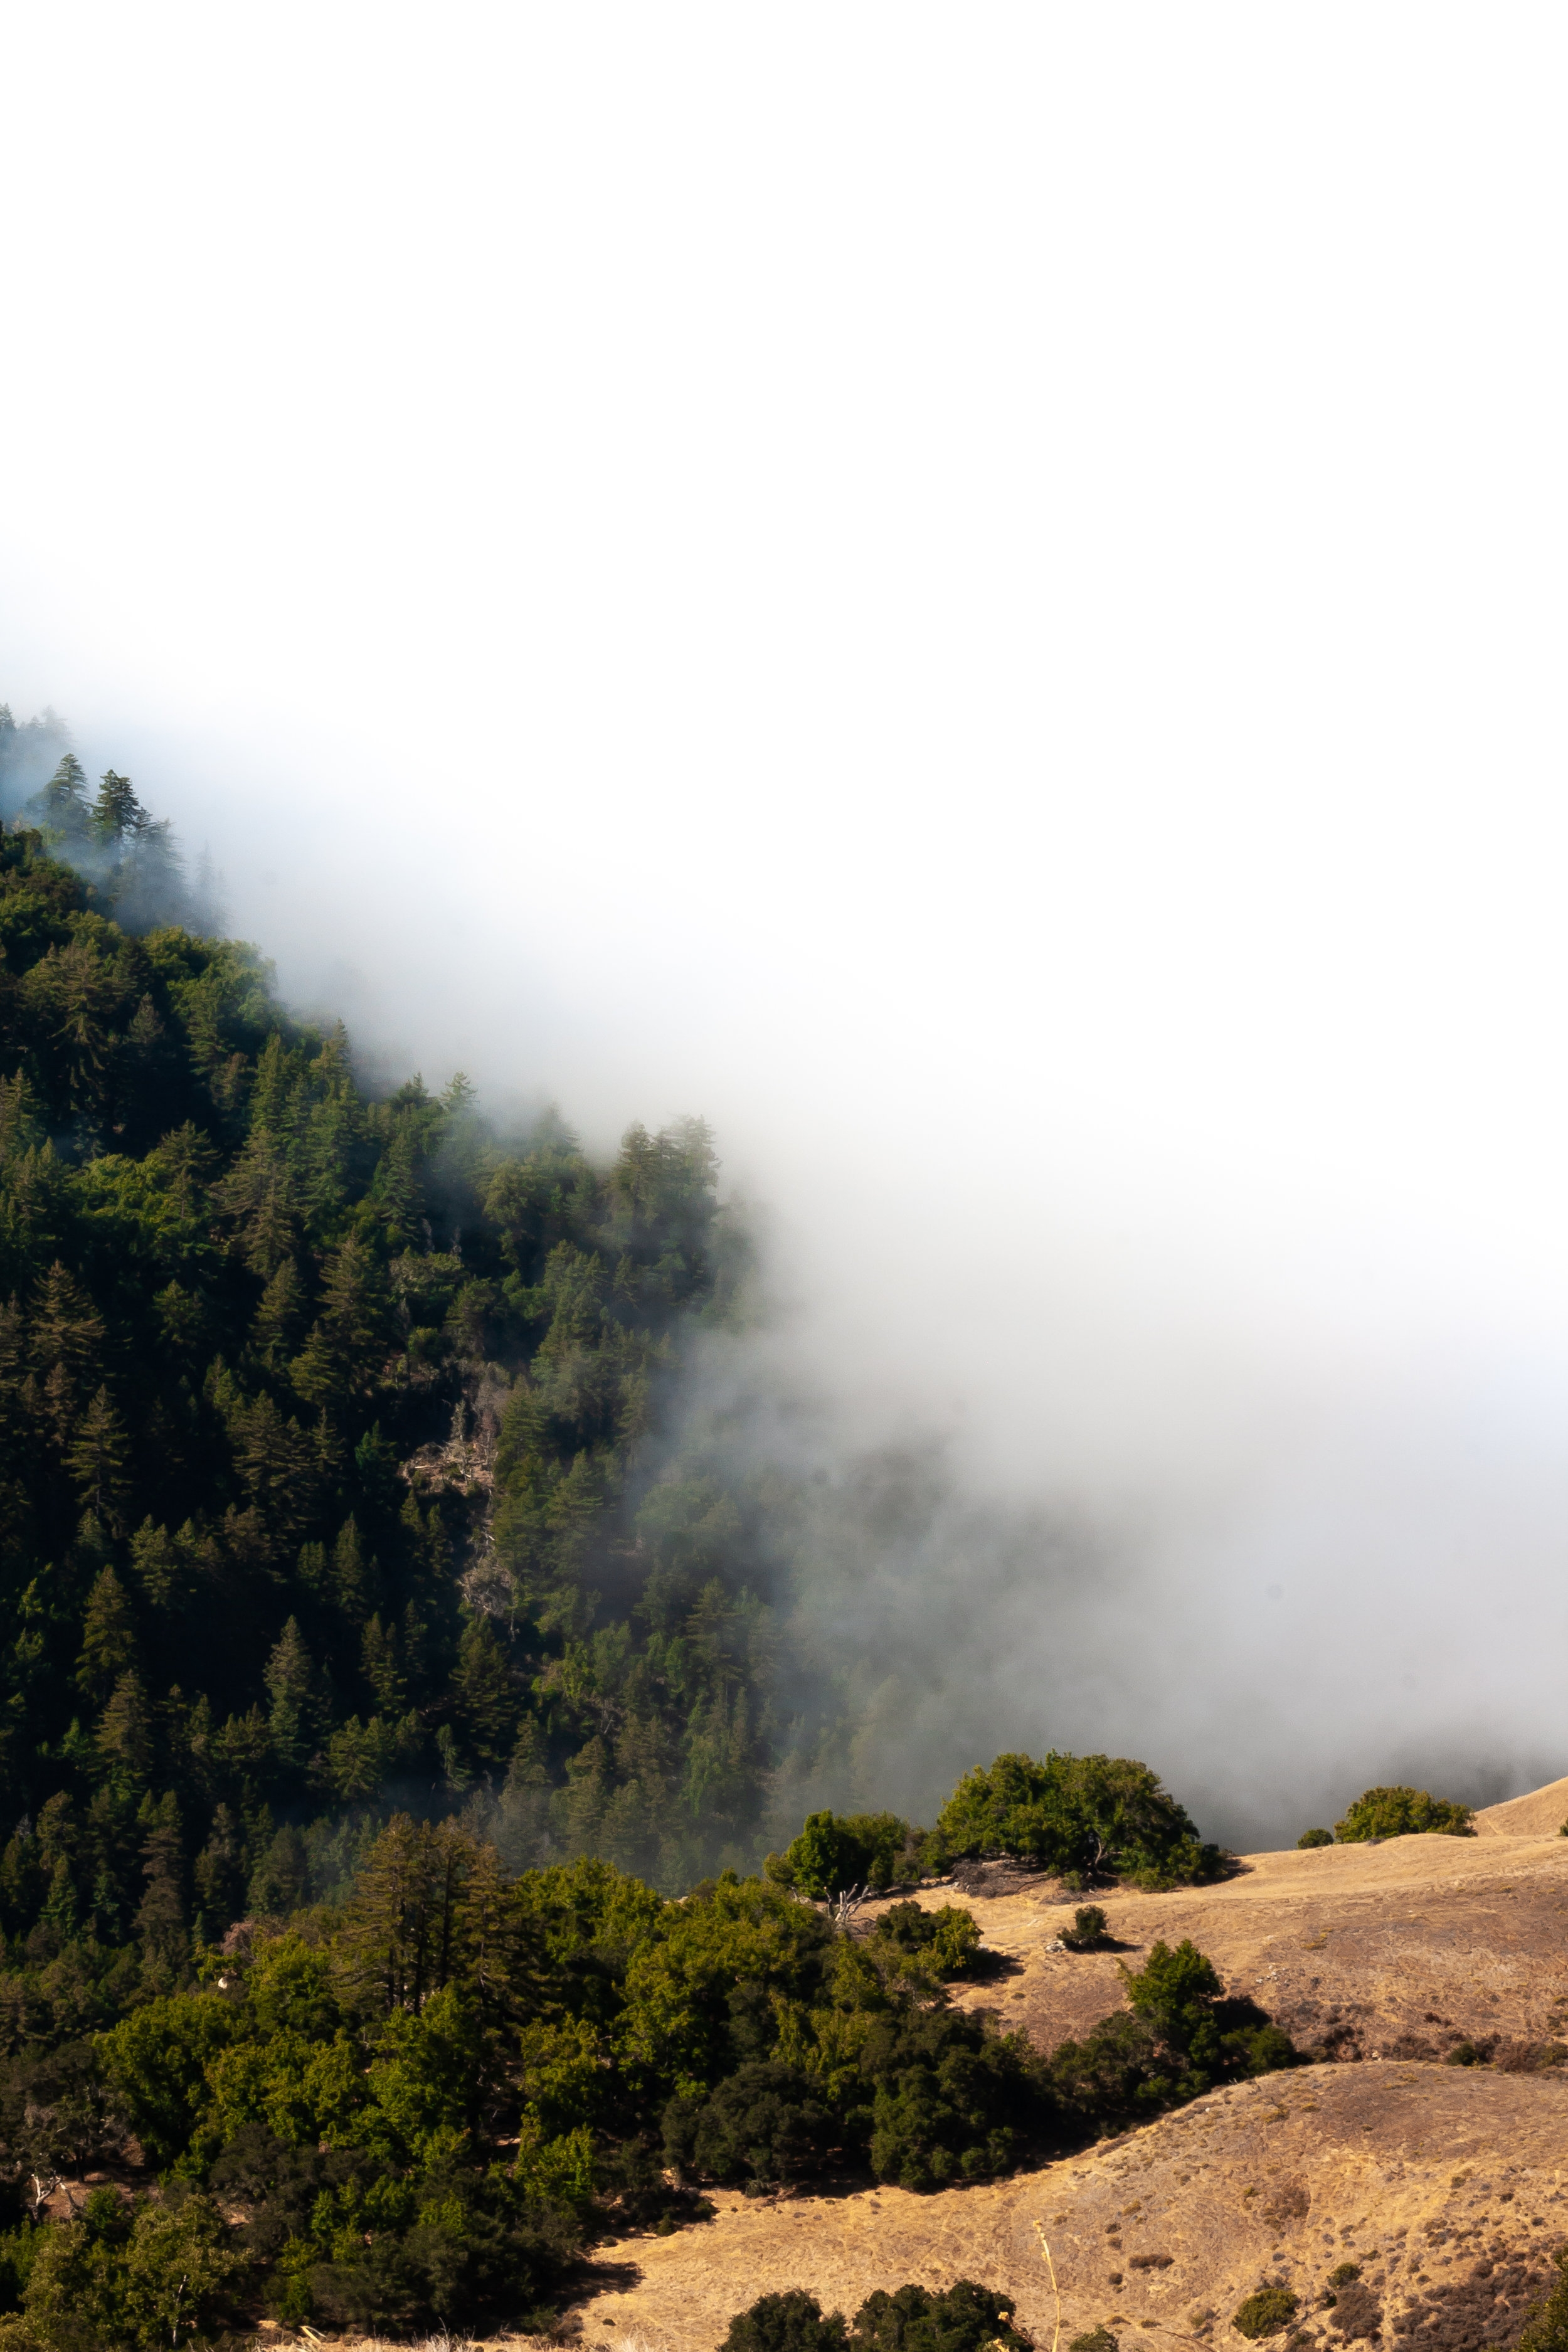 As we moved closer to the coast, a fog was guarding the path to the water.